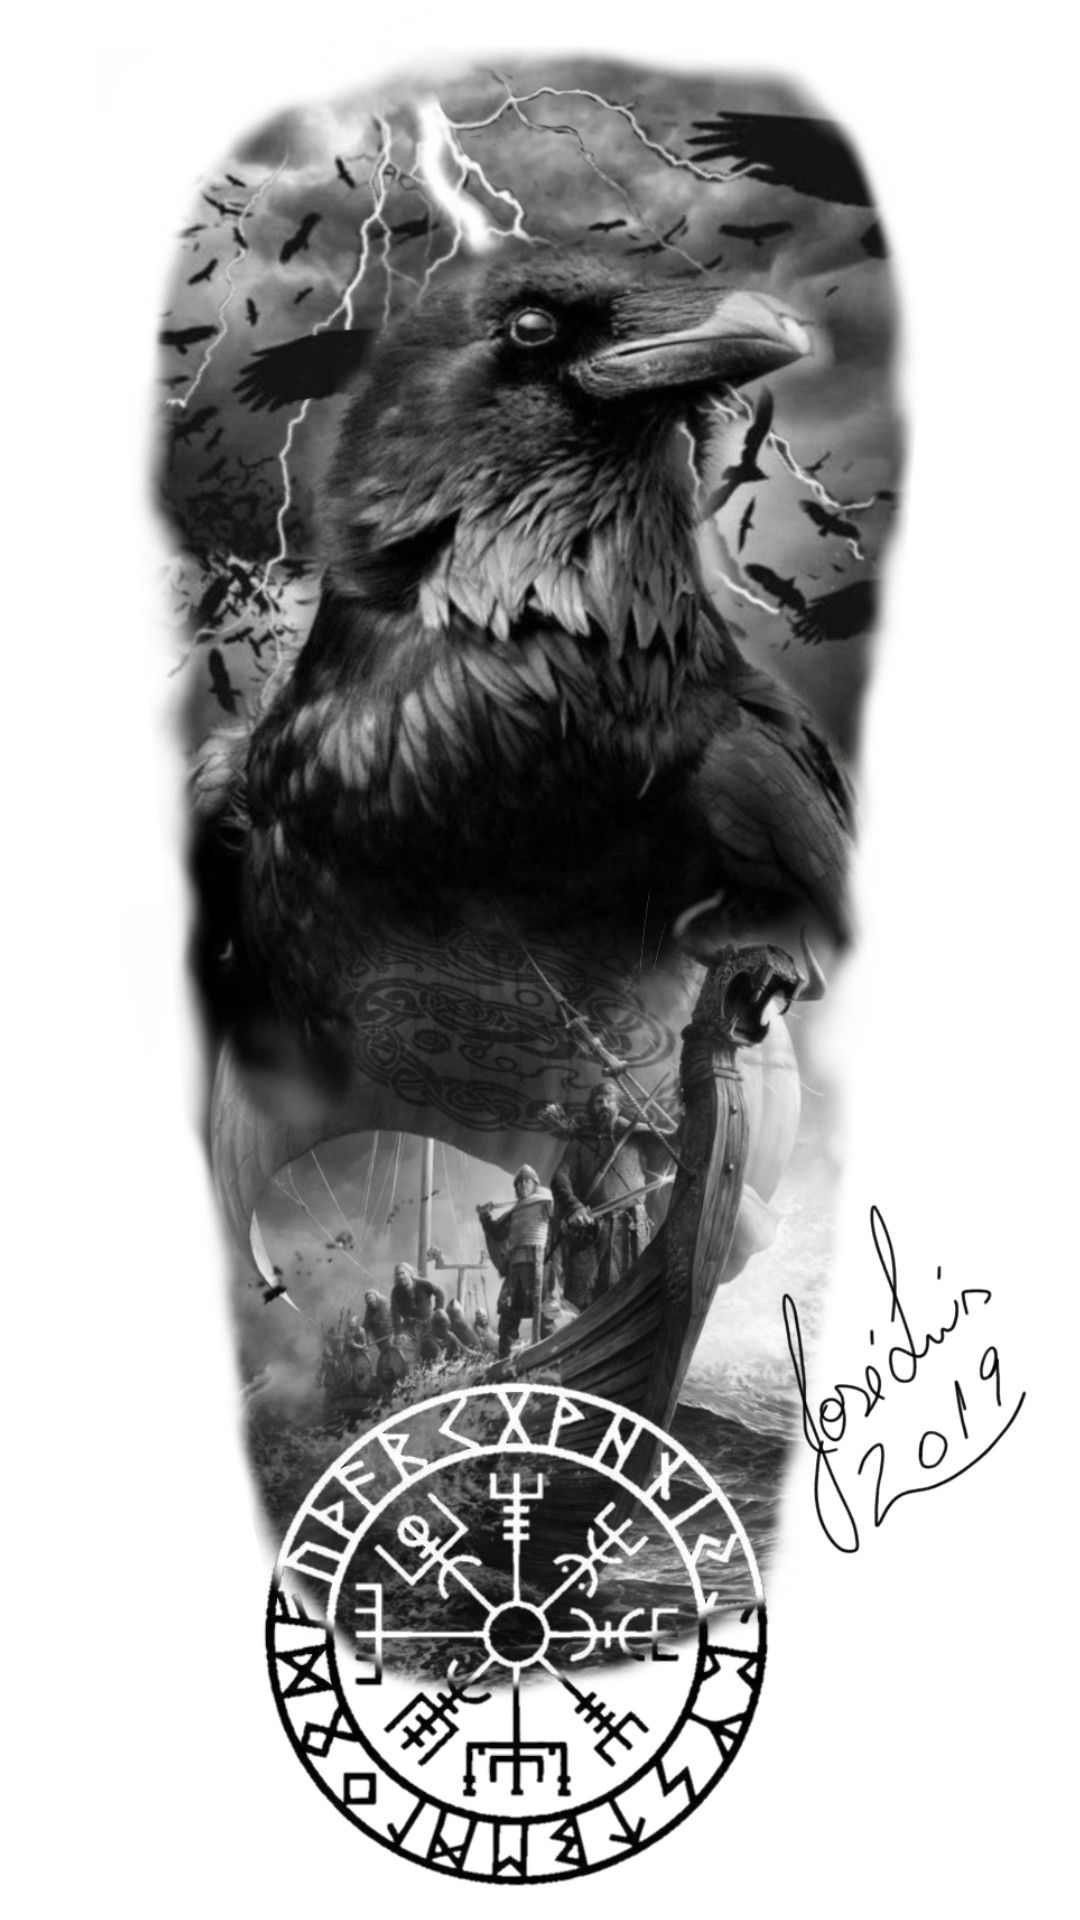 Tattoo vikings crow Odin ship | Tatuagem nórdica ...